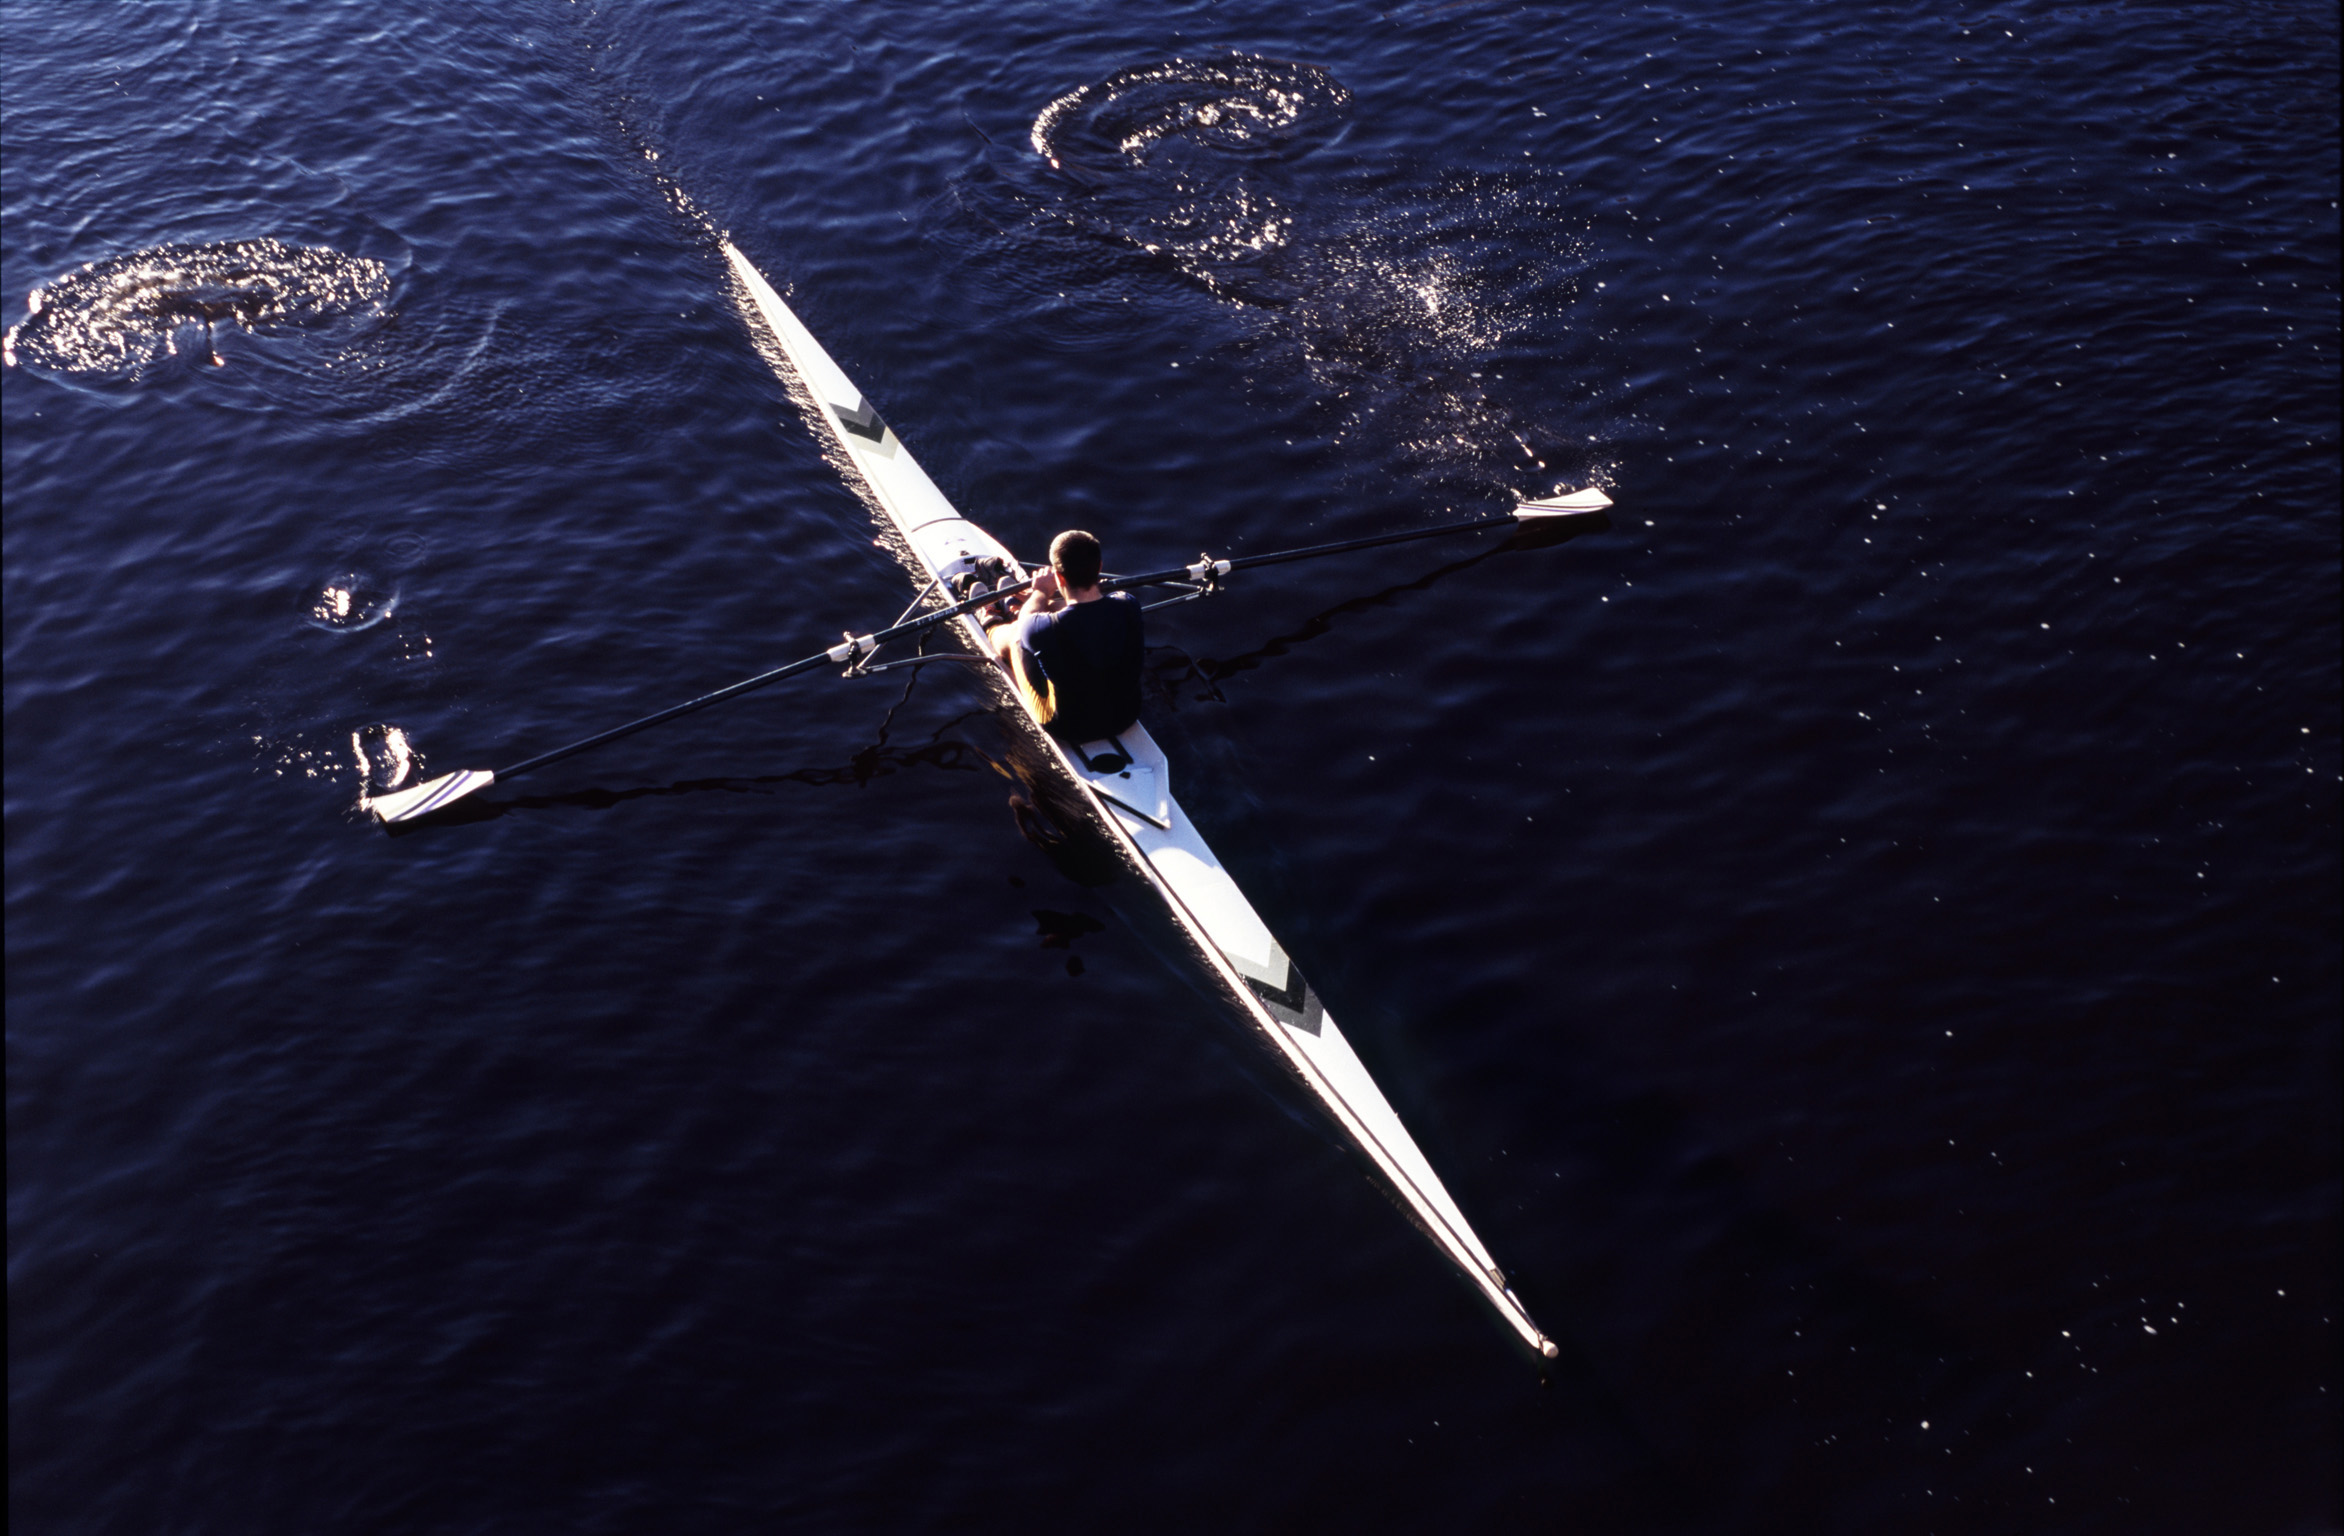 Overhead view of a man practising sculling in a single boat rowing along a river with water splash off the oars